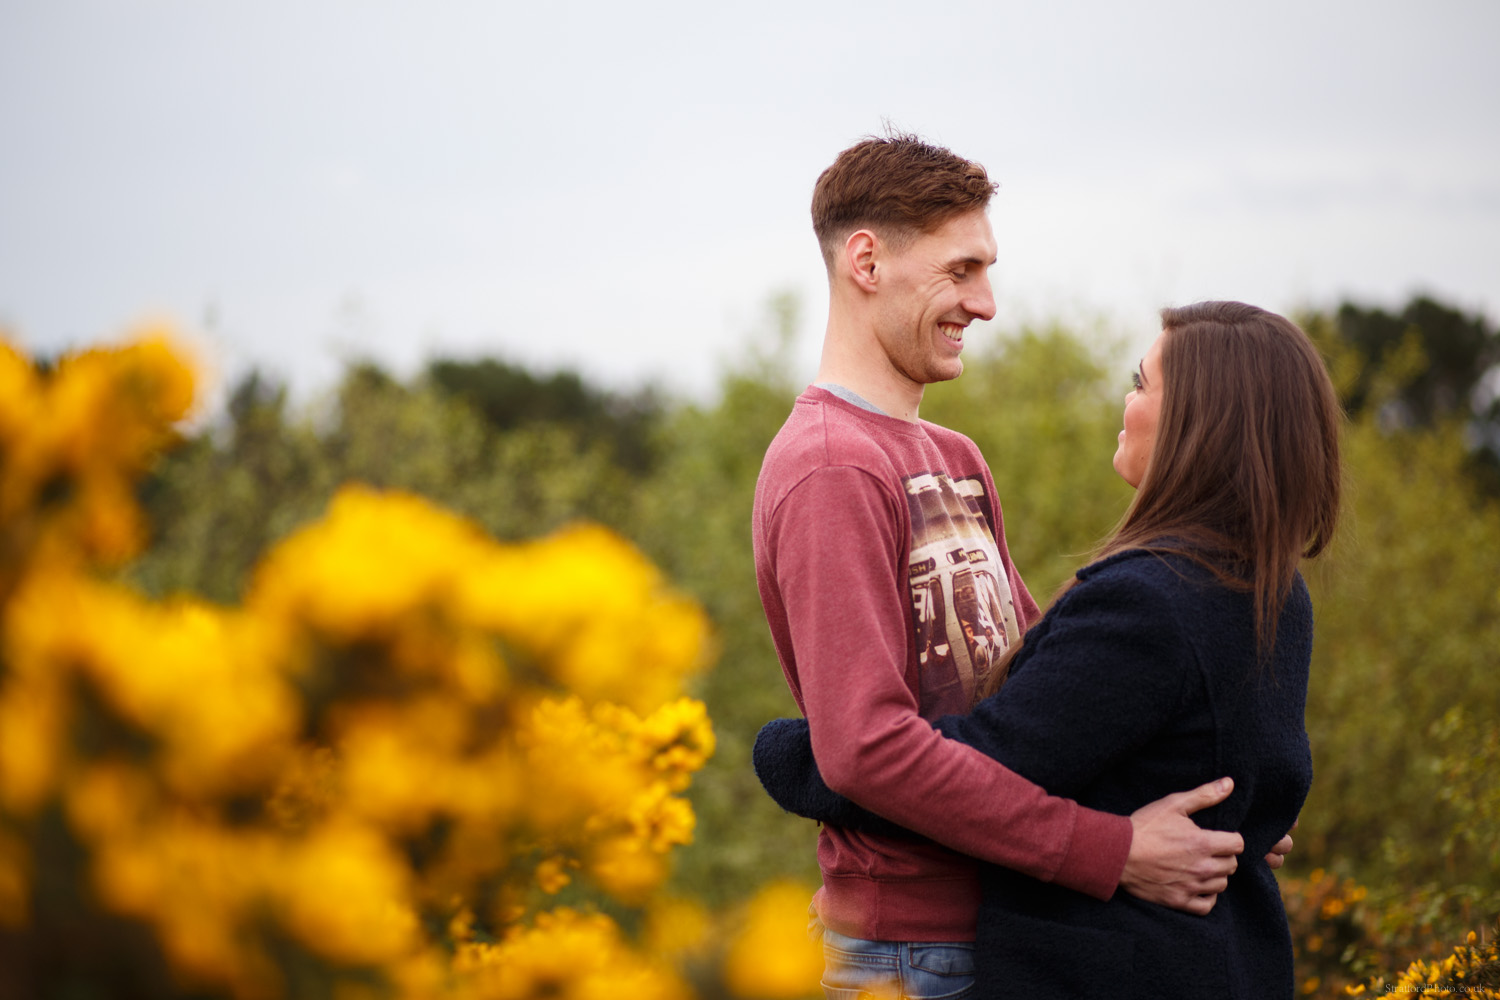 Hayley & David Beautiful Romantic Sunset Prewedding Engagement Shoot at Thurstaston on the Wirral 7.jpg